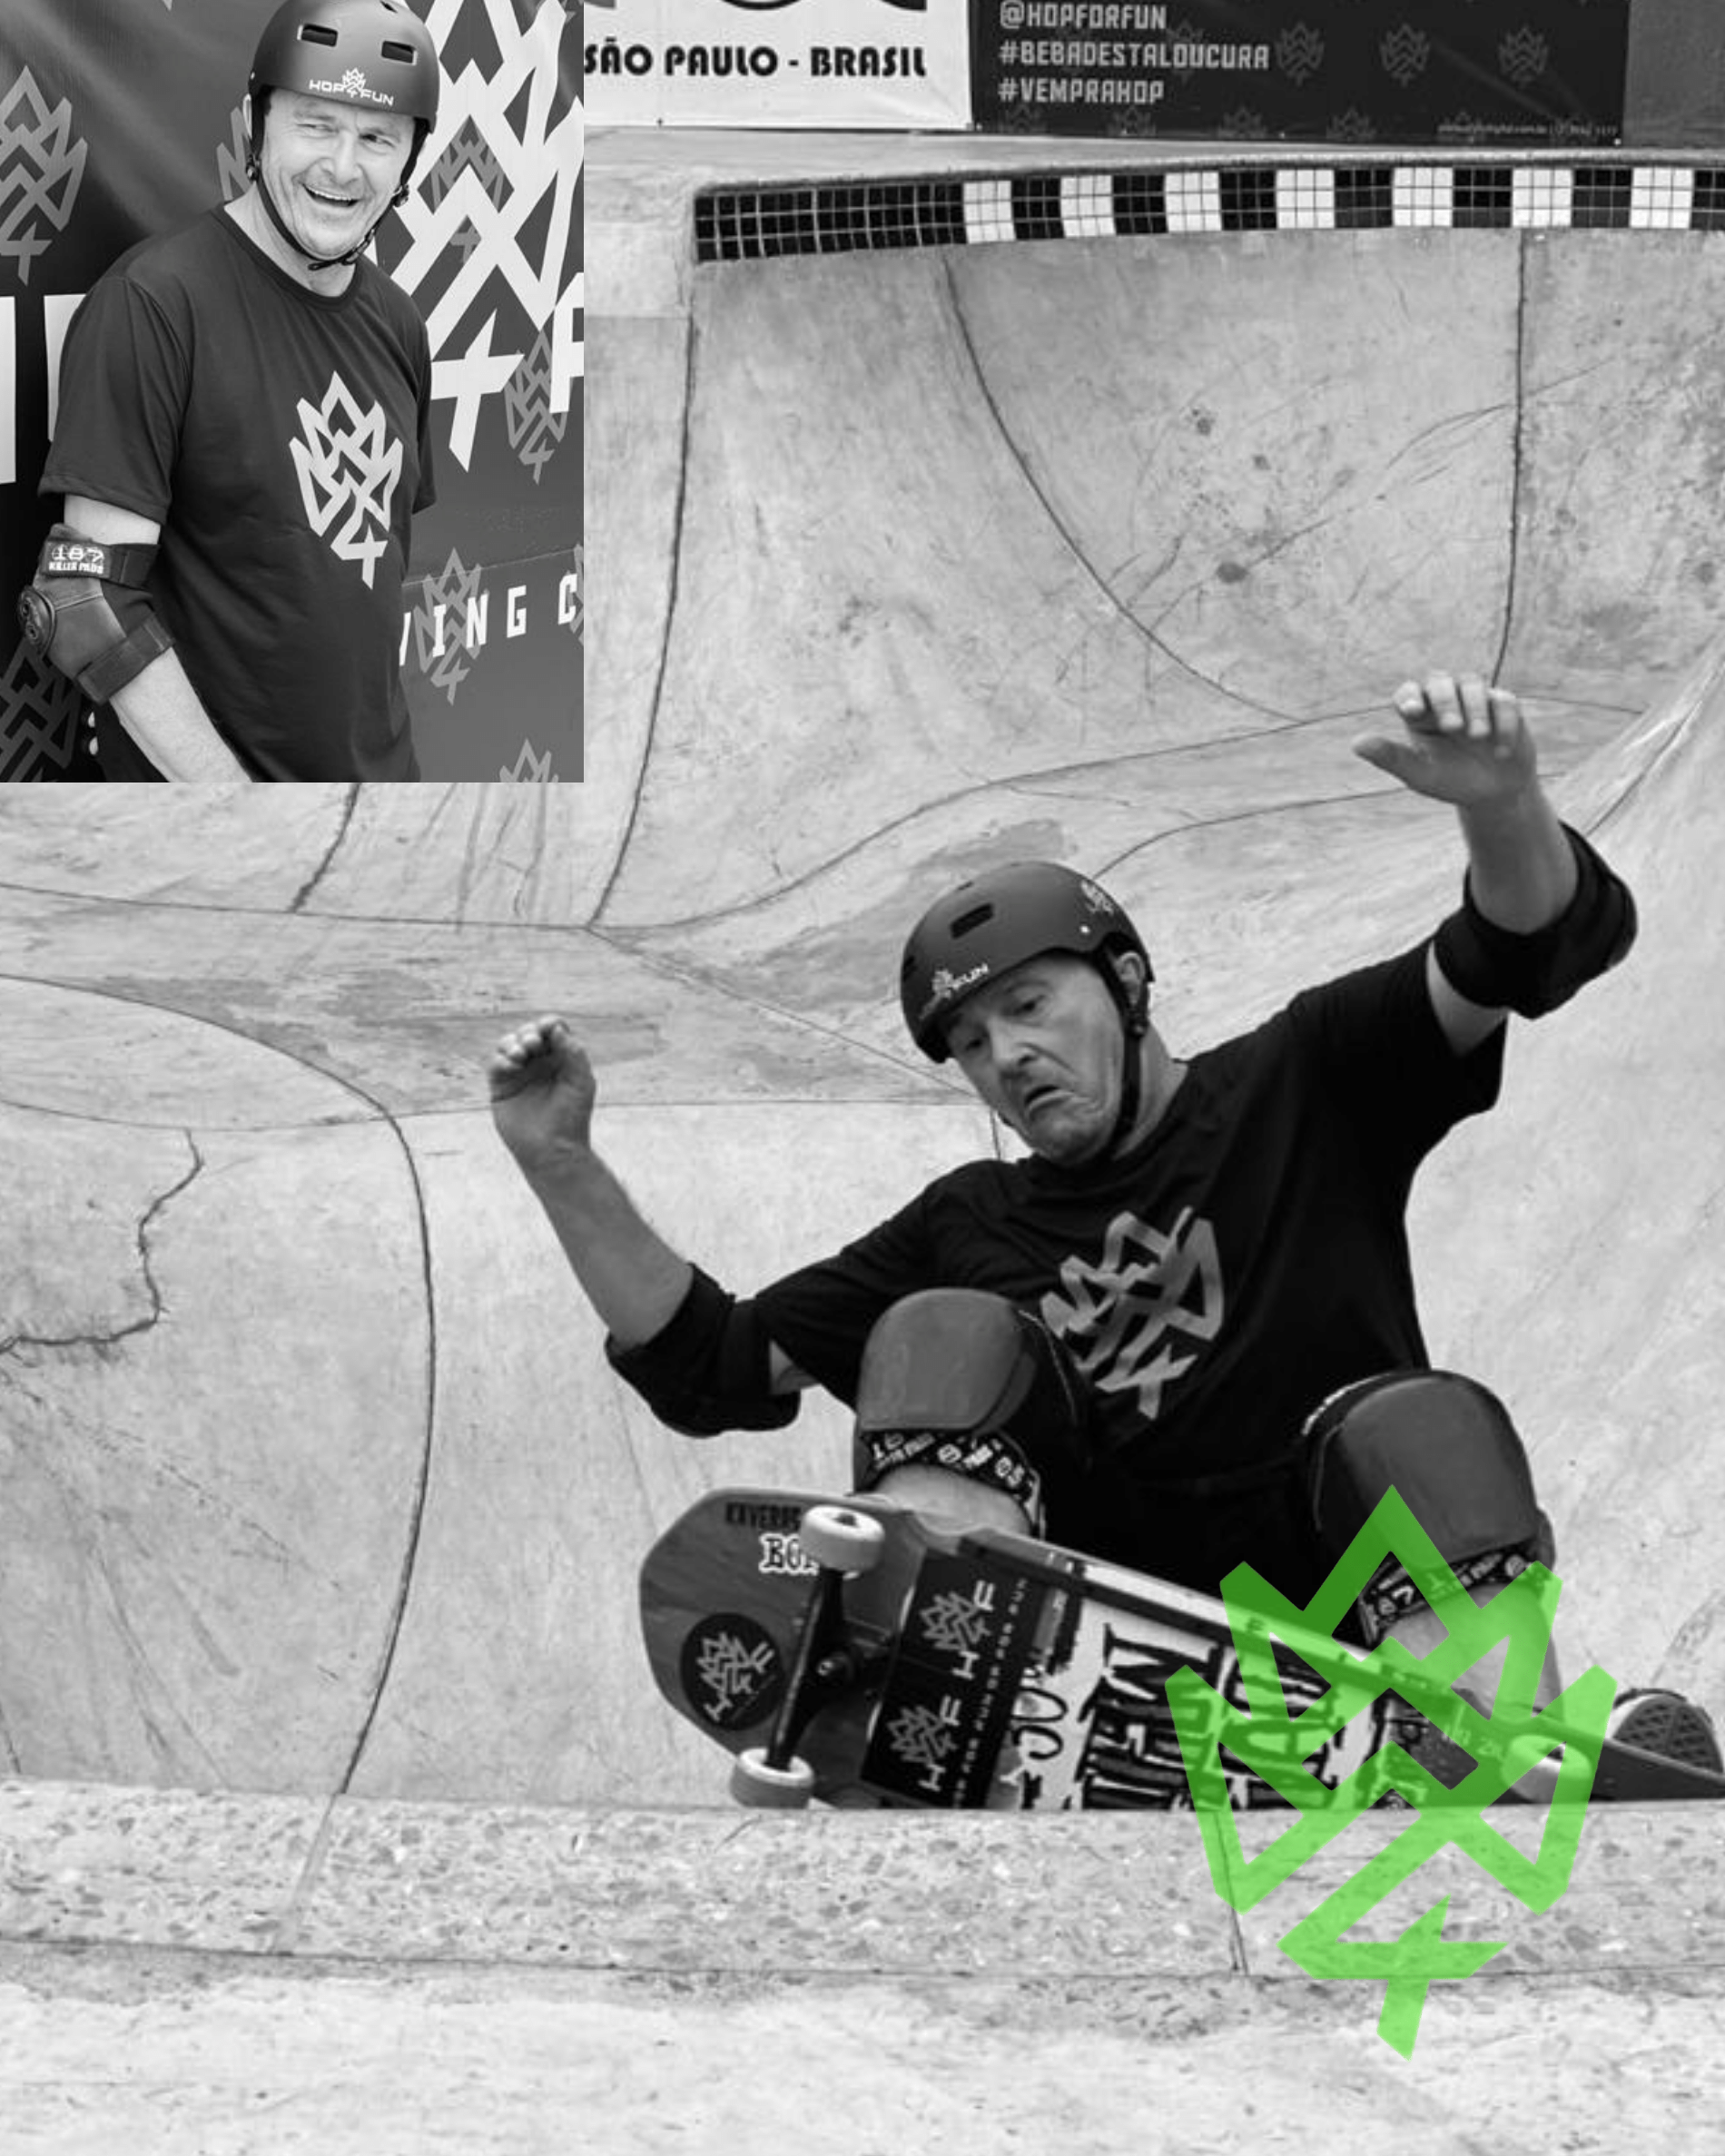 Antonio Pelliciotti Toco skate team hop for fun